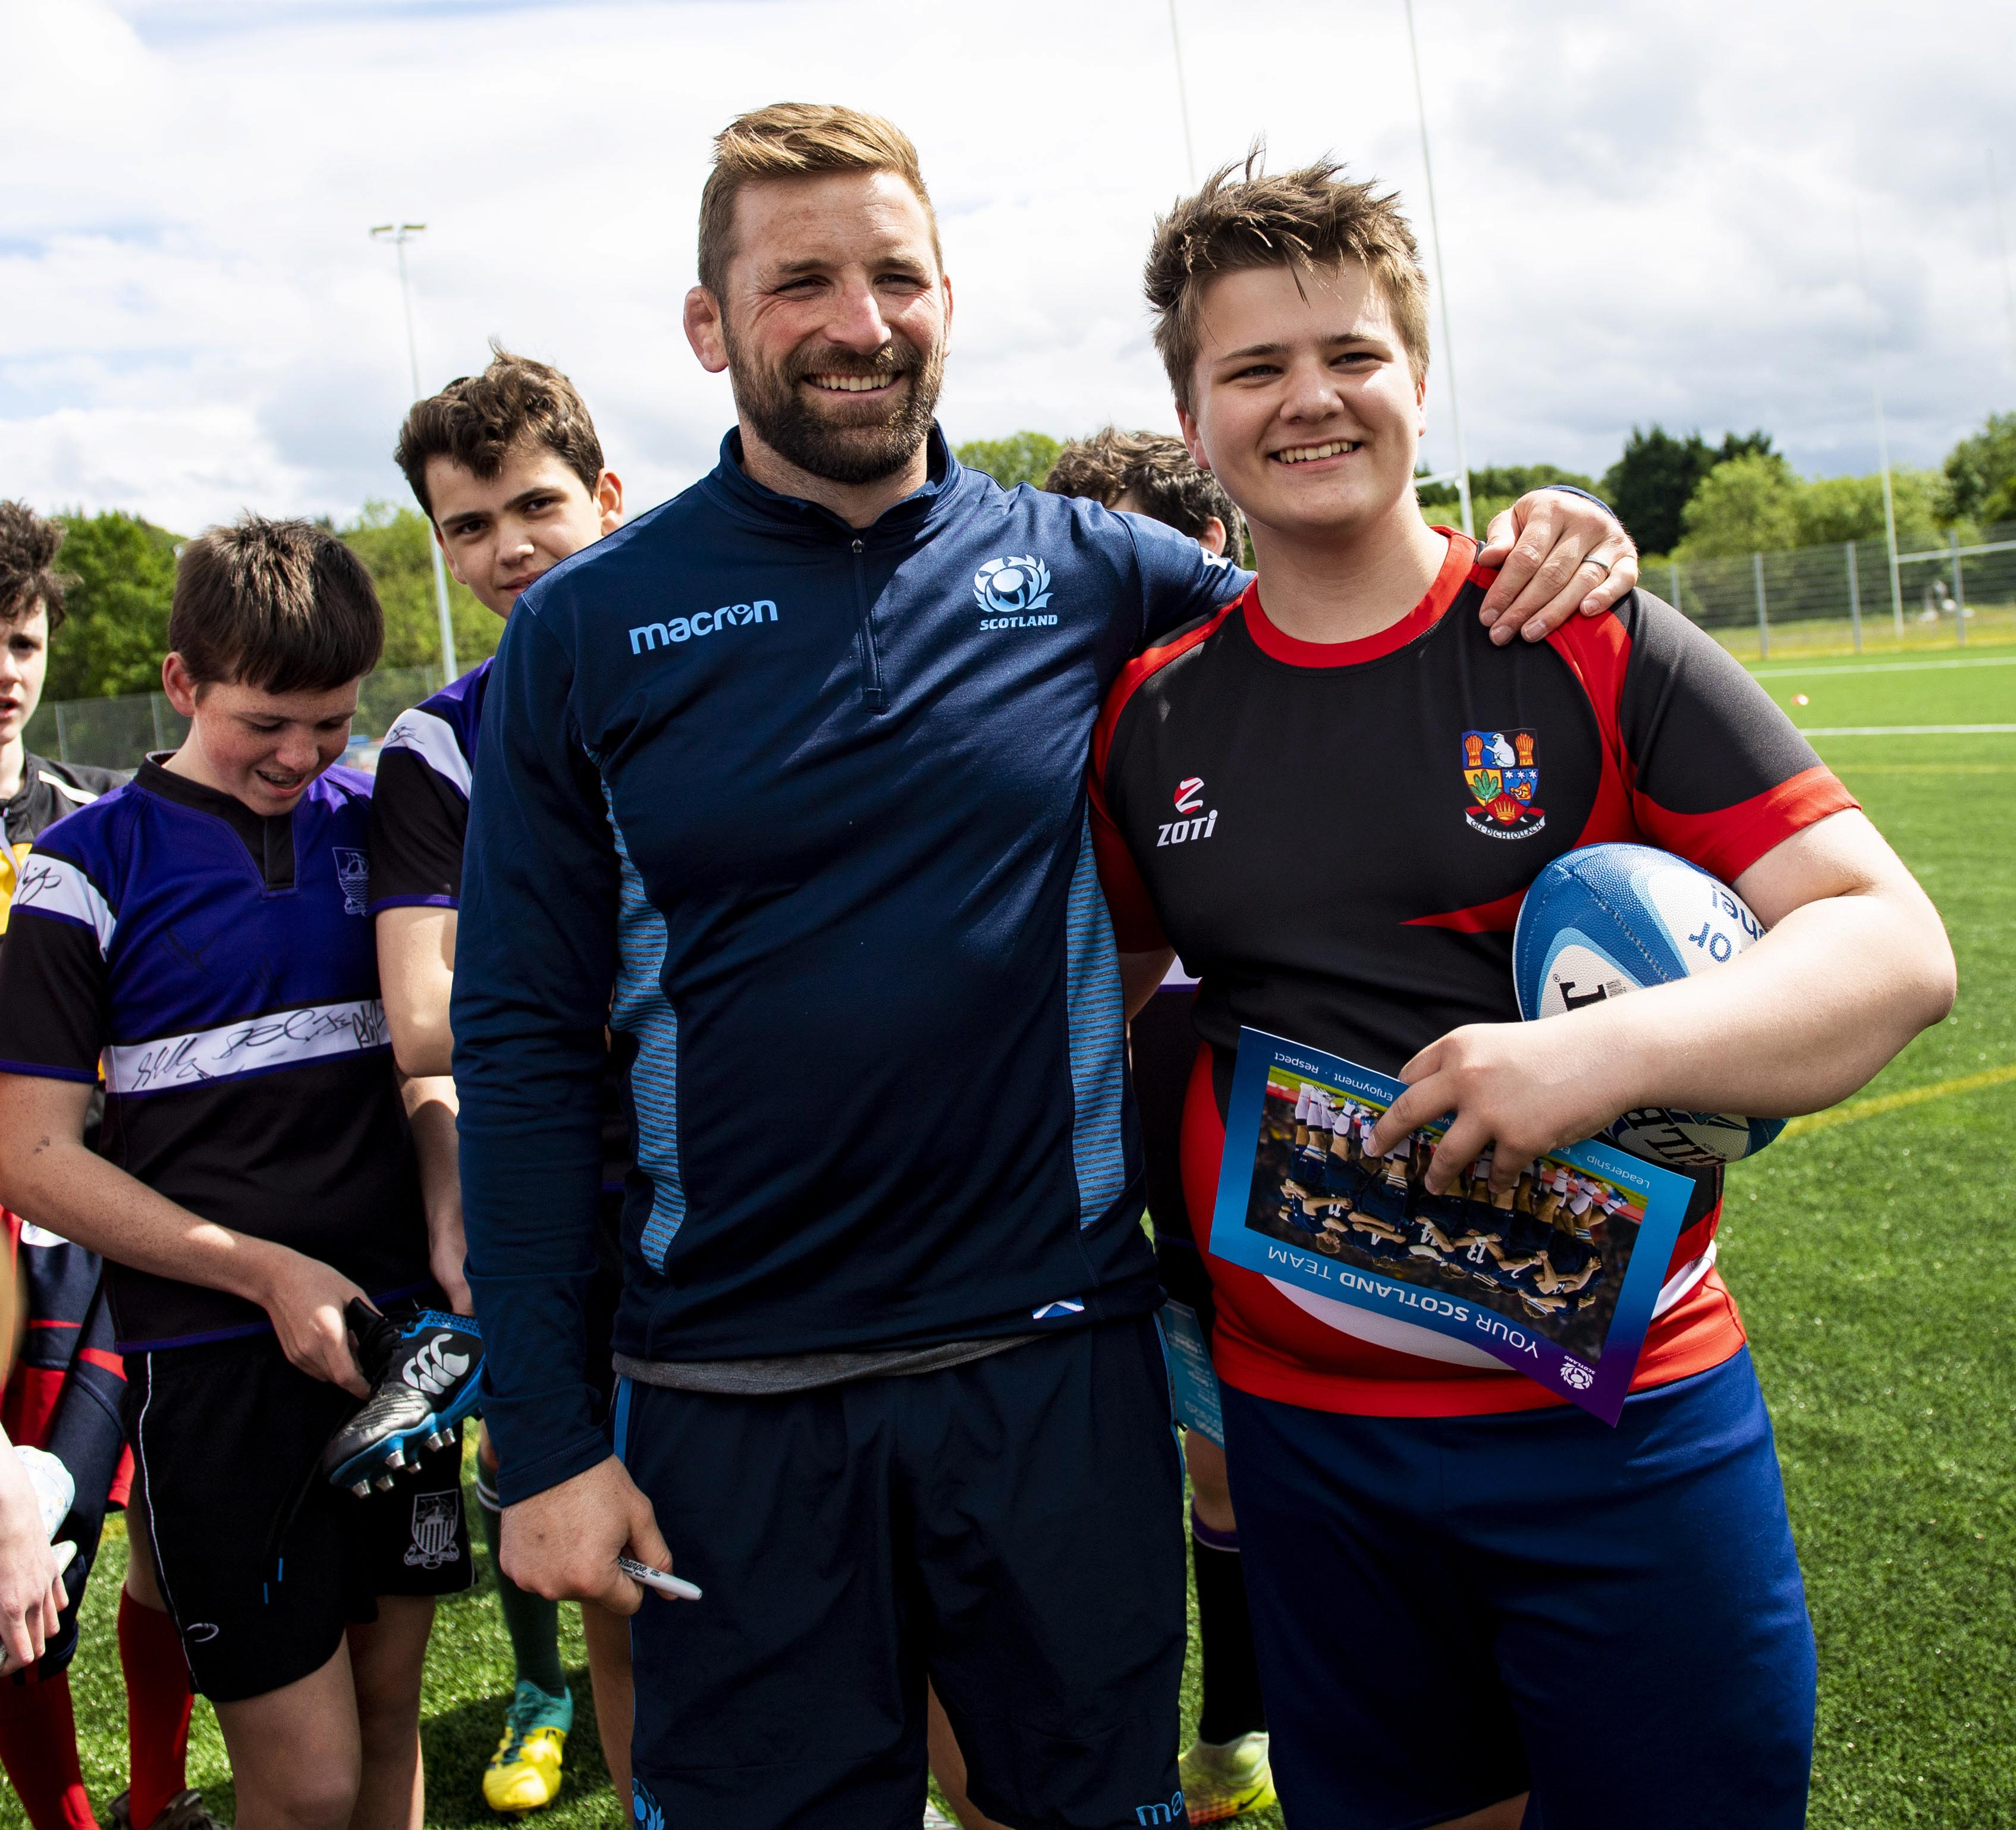 18/06/19 SCOTLAND TRAINING CAMP CANAL PARK - INVERNESS Scotland's John Barclay meets the fans